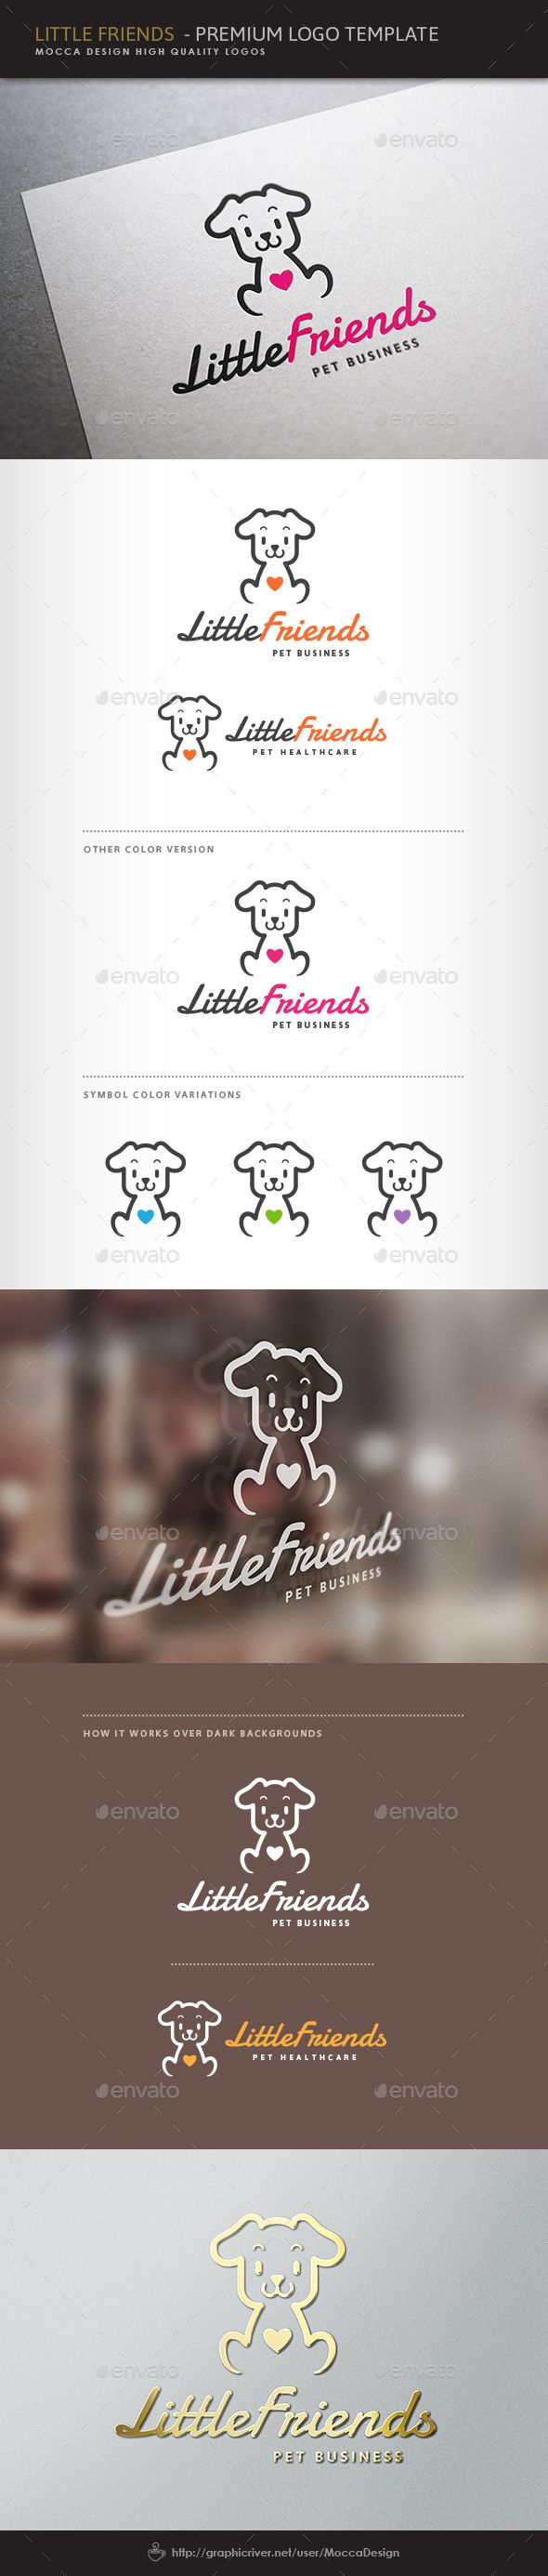 Little Friends Logo — Vector EPS #puppies supplies store #sweet puppy • Available here → https://graphicriver.net/item/little-friends-logo/5019785?ref=pxcr